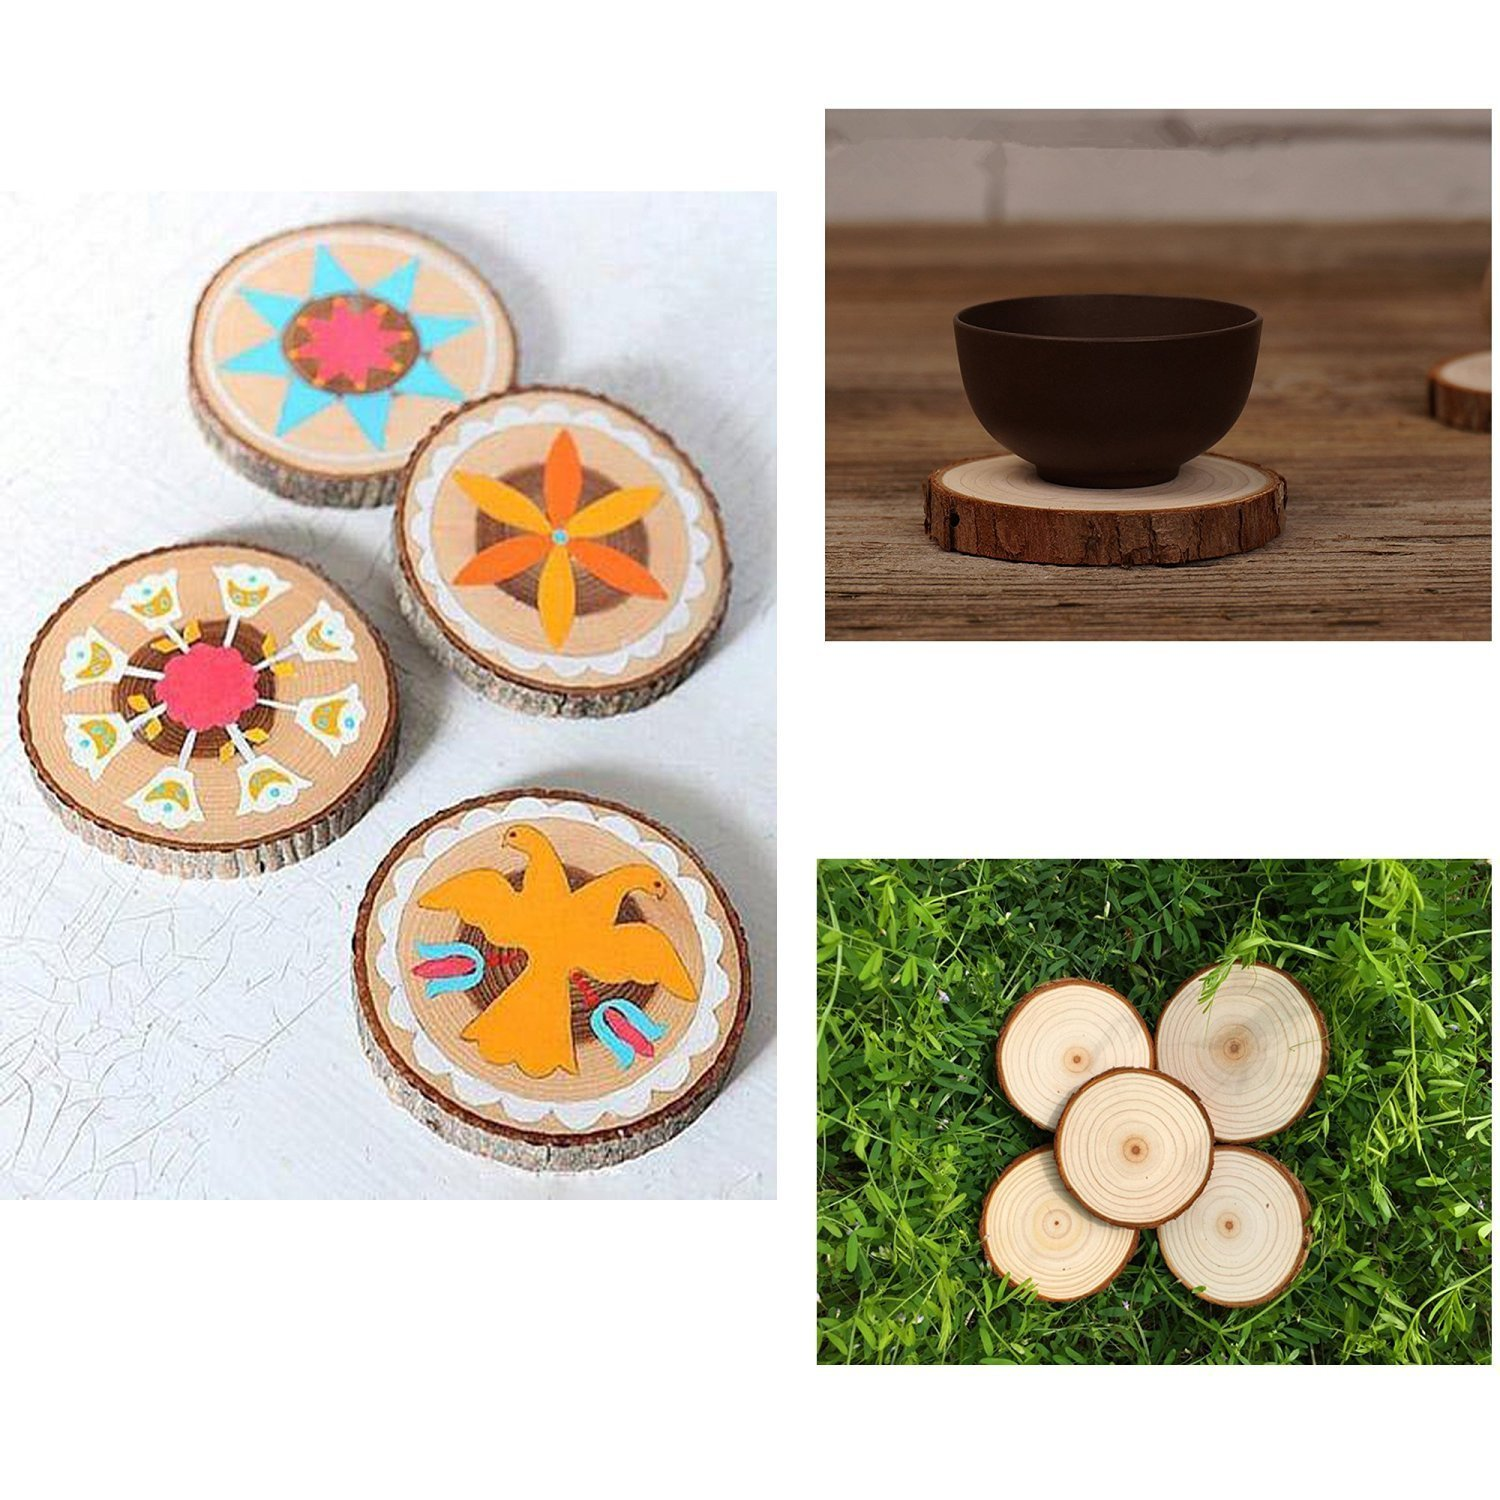 COCO Unpainted Natural Round Blank Wood Slices with Tree Bark Log Discs for DIY Craft Woodburning Christmas Rustic Wedding Ornaments 20-25cm/8''-10'' (Pack of 1 pcs)